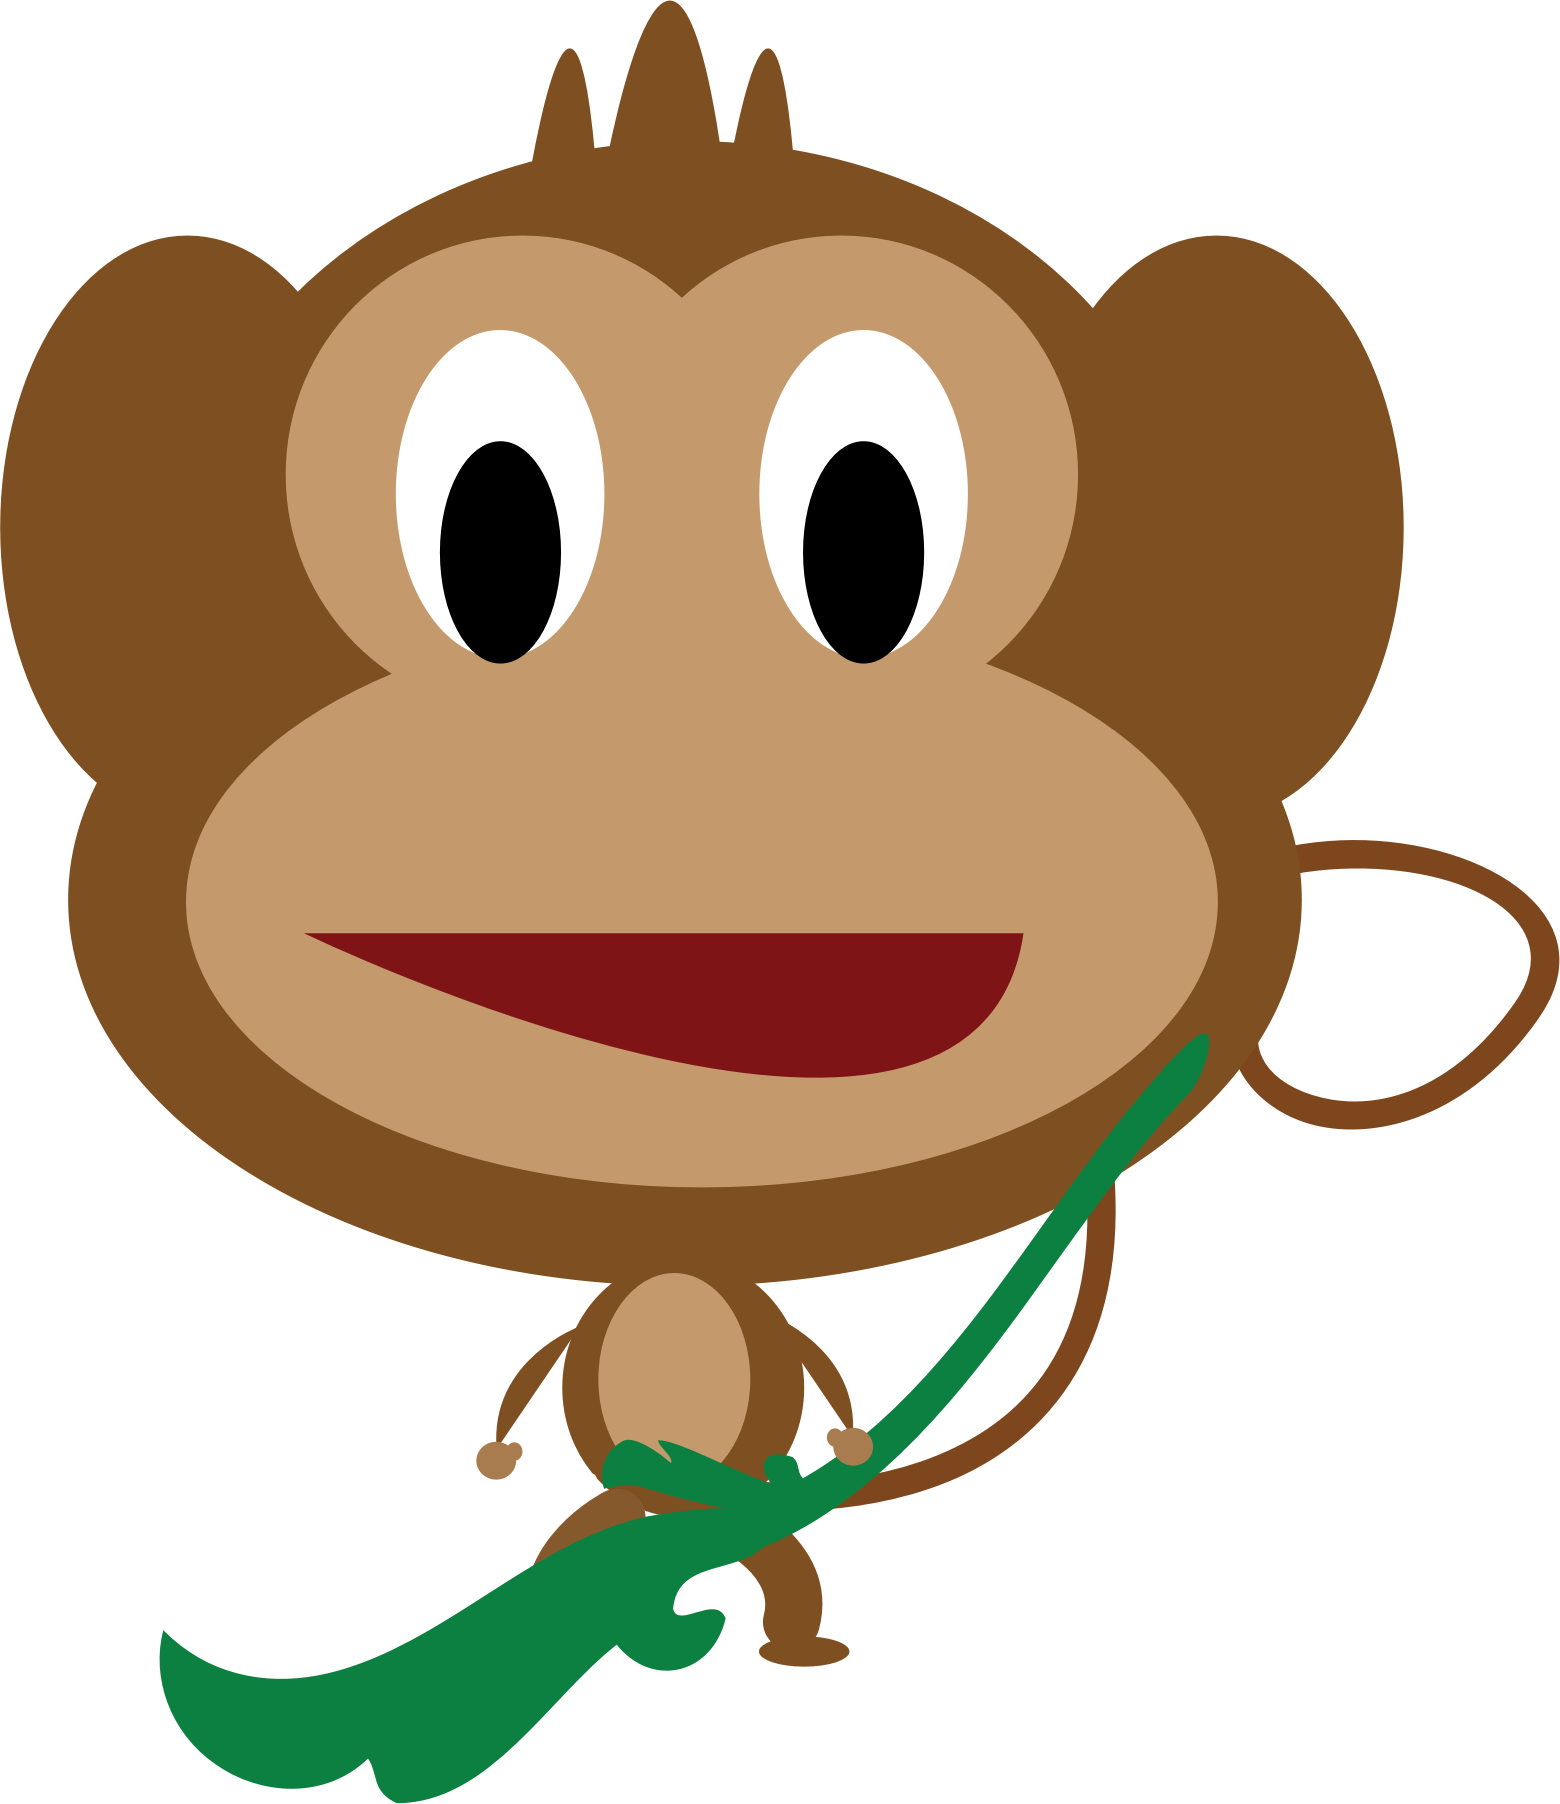 Monkey by syforce1999